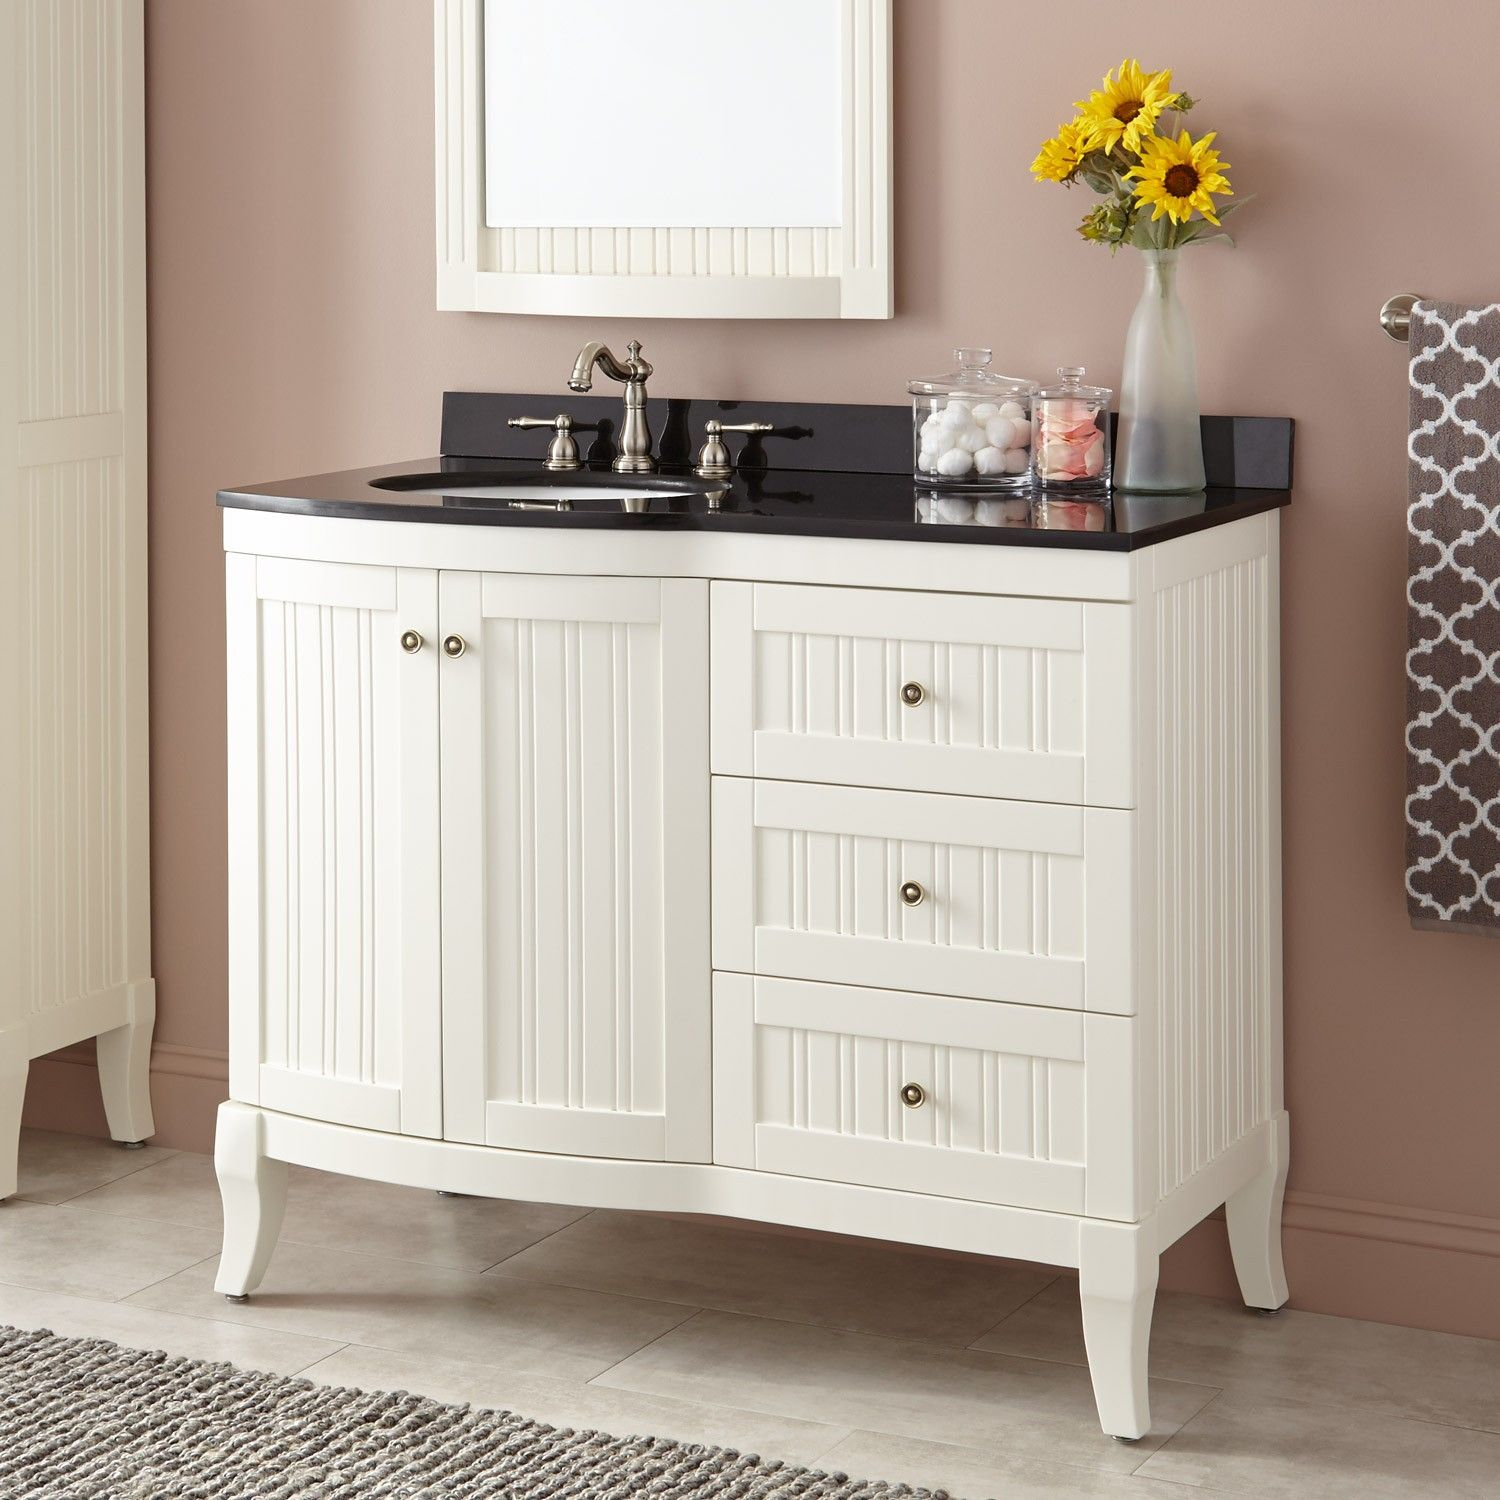 Fabulous Bathroom Vanity 42 | Spirit Decoration for 42 In Bathroom Vanity